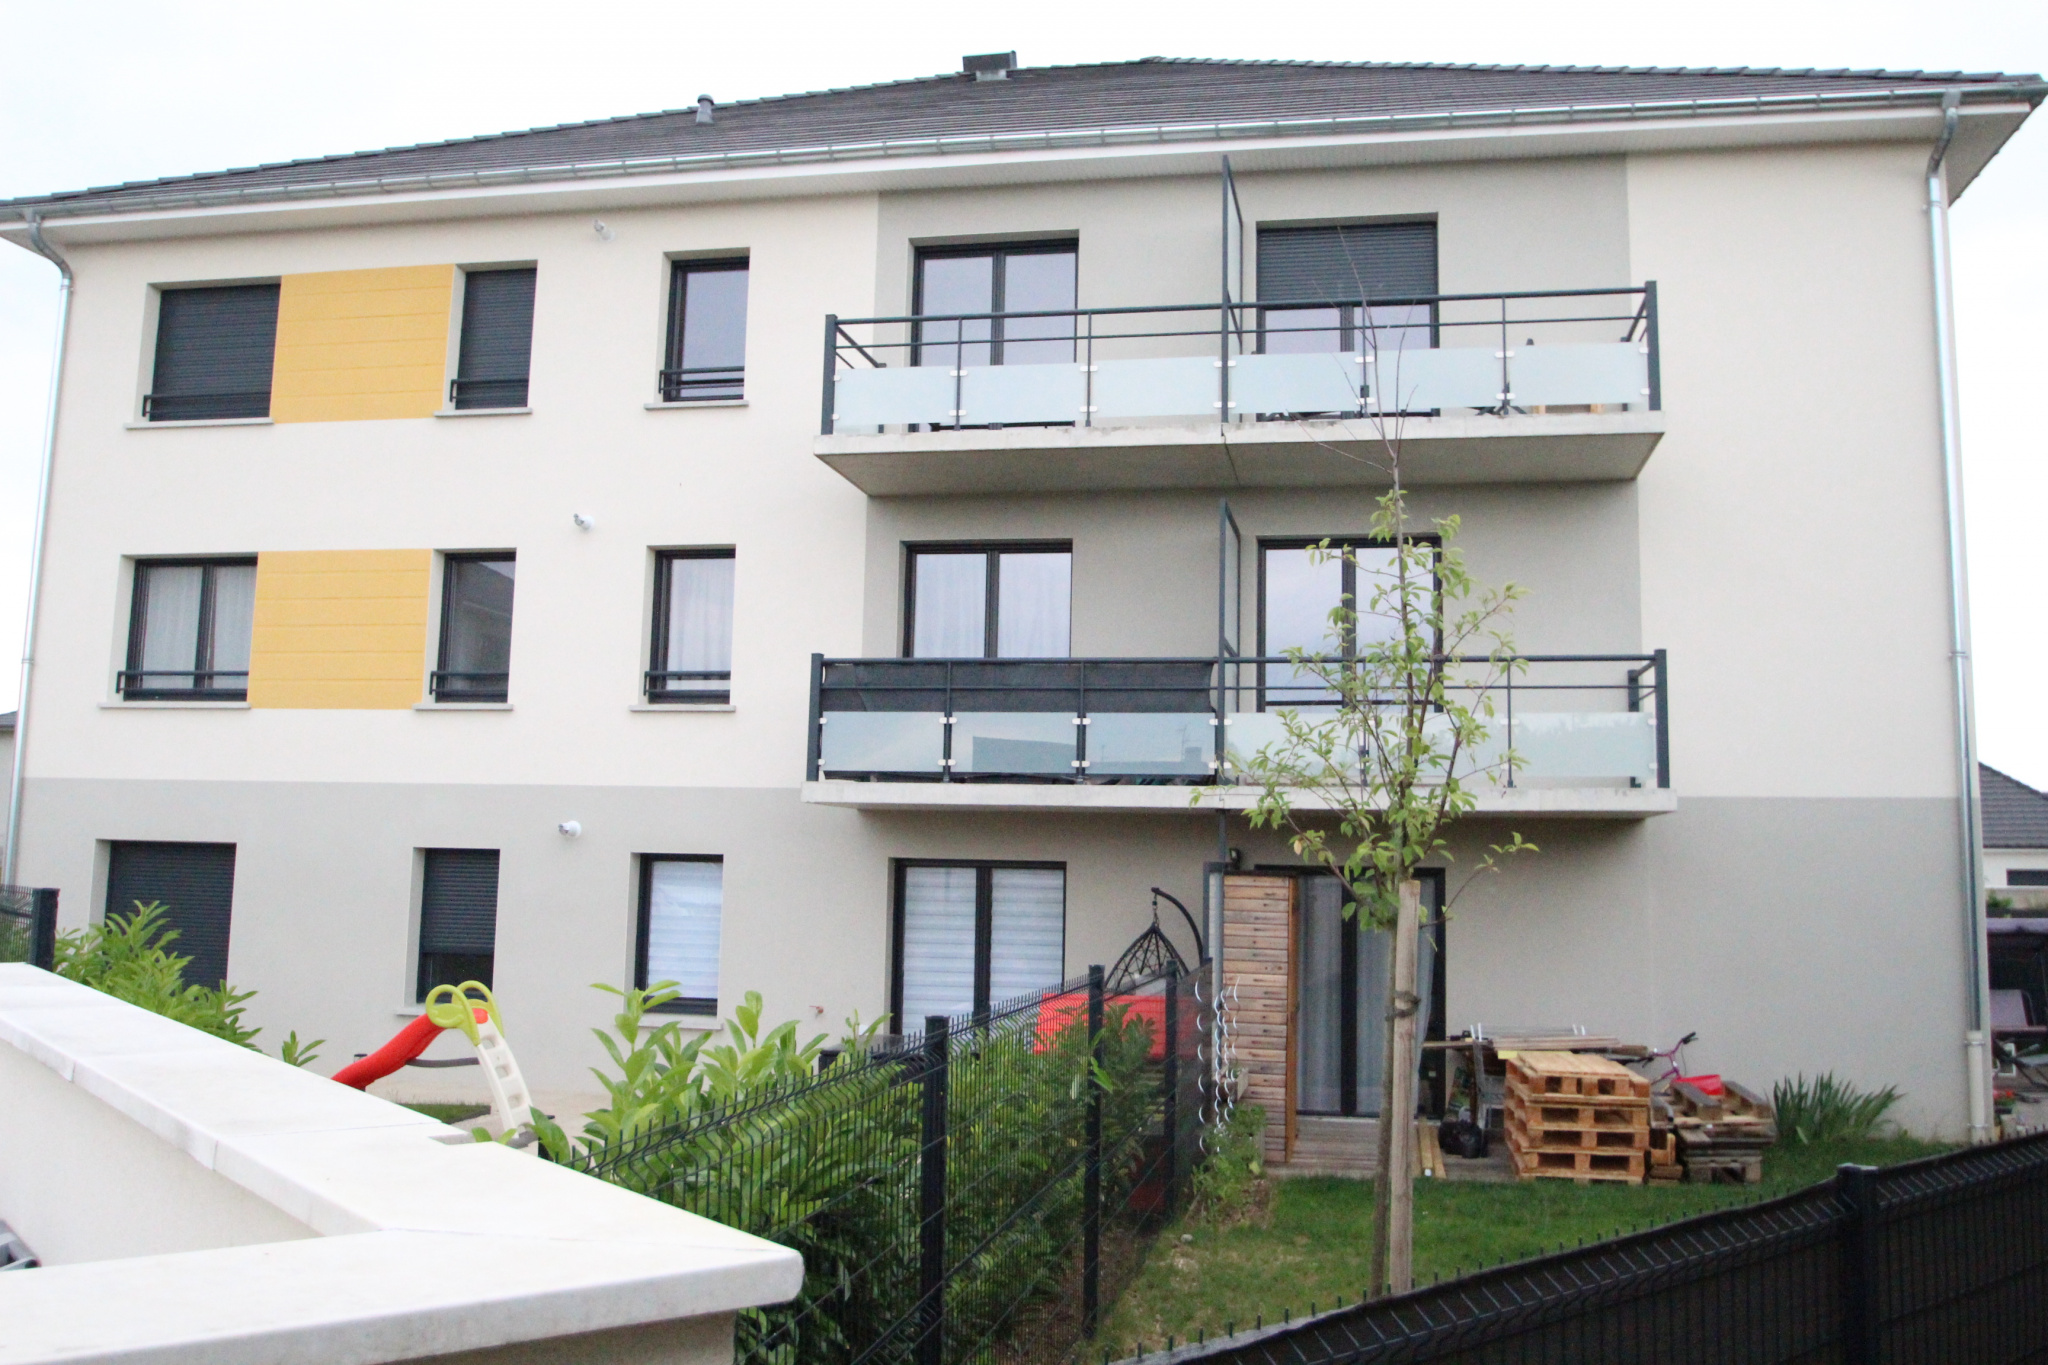 Vente appartement neuilly les dijon bus